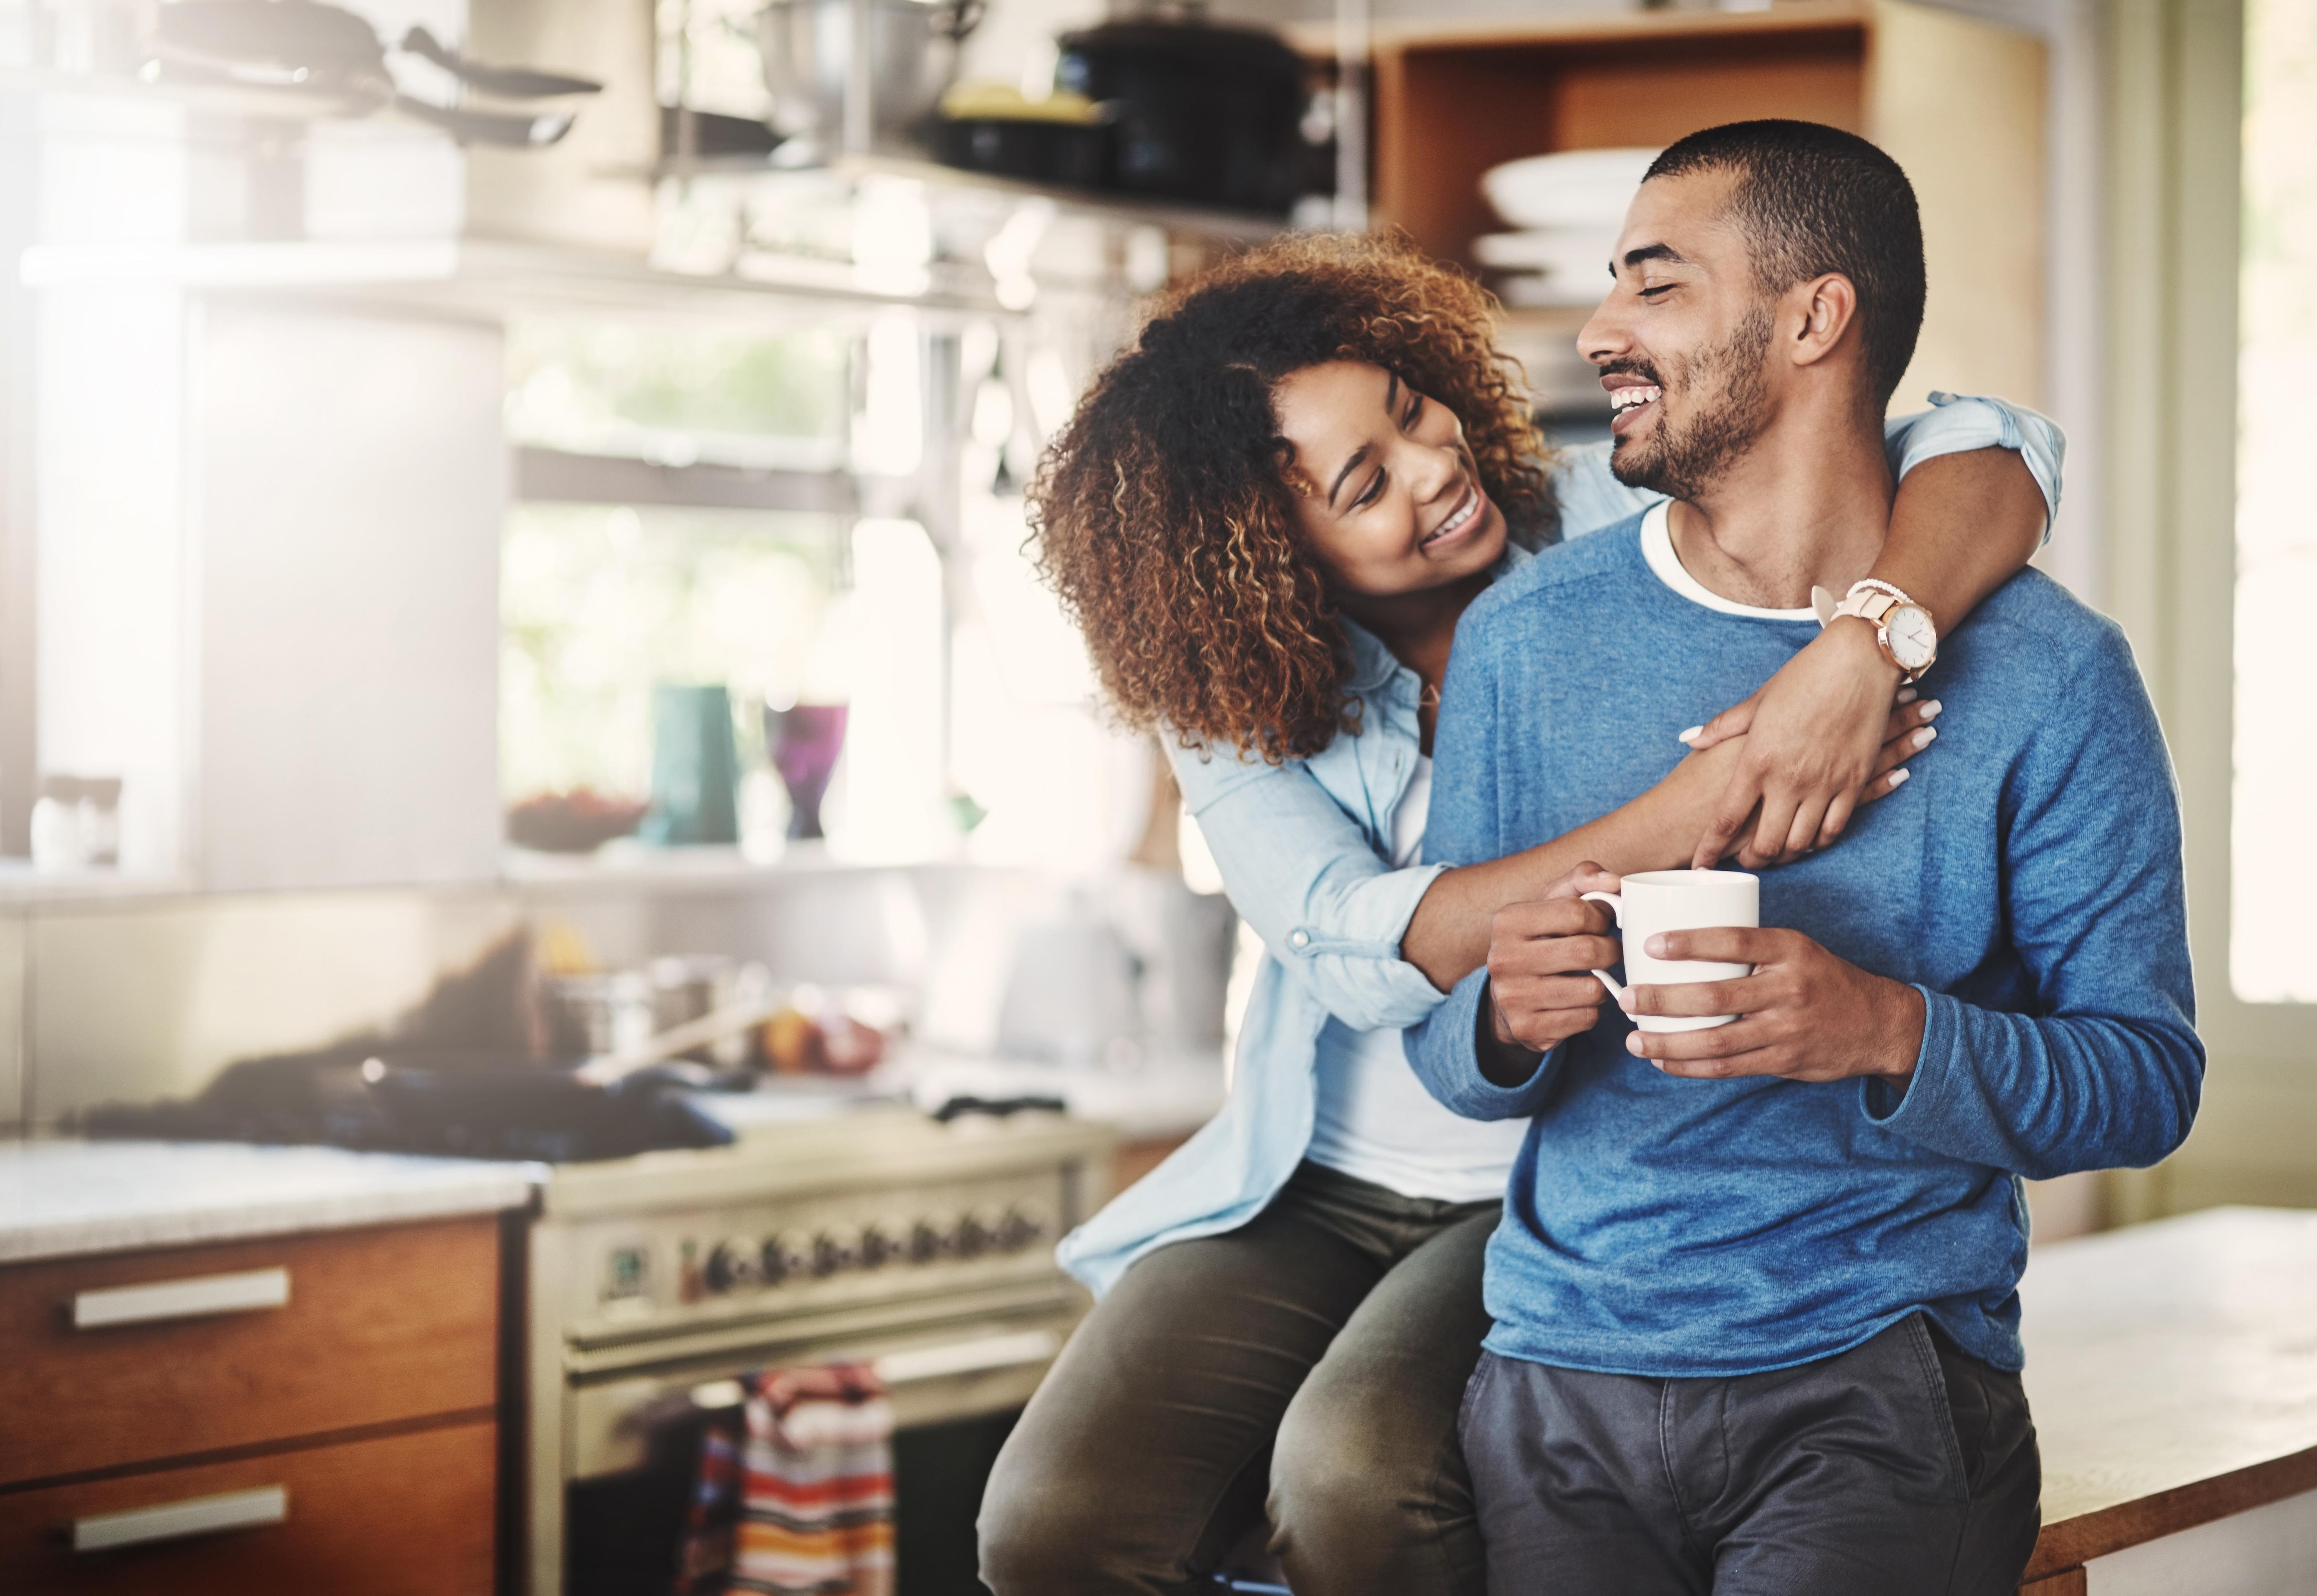 Average British couple spend just 4 hours a day in same room, research reveals